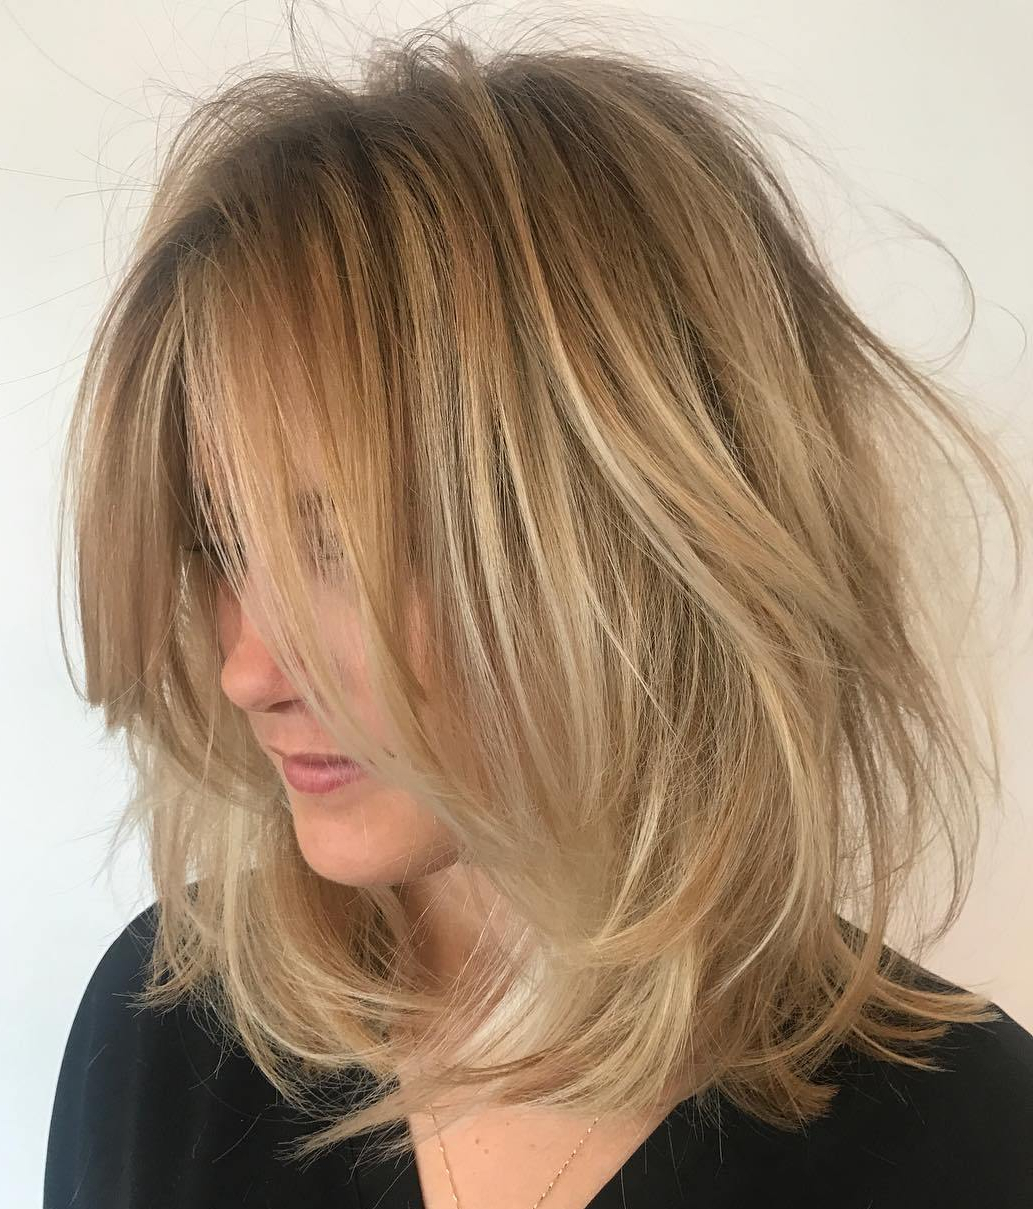 70 Devastatingly Cool Haircuts For Thin Hair Regarding Current Layered Haircuts With Cropped Locks On The Crown (Gallery 14 of 20)